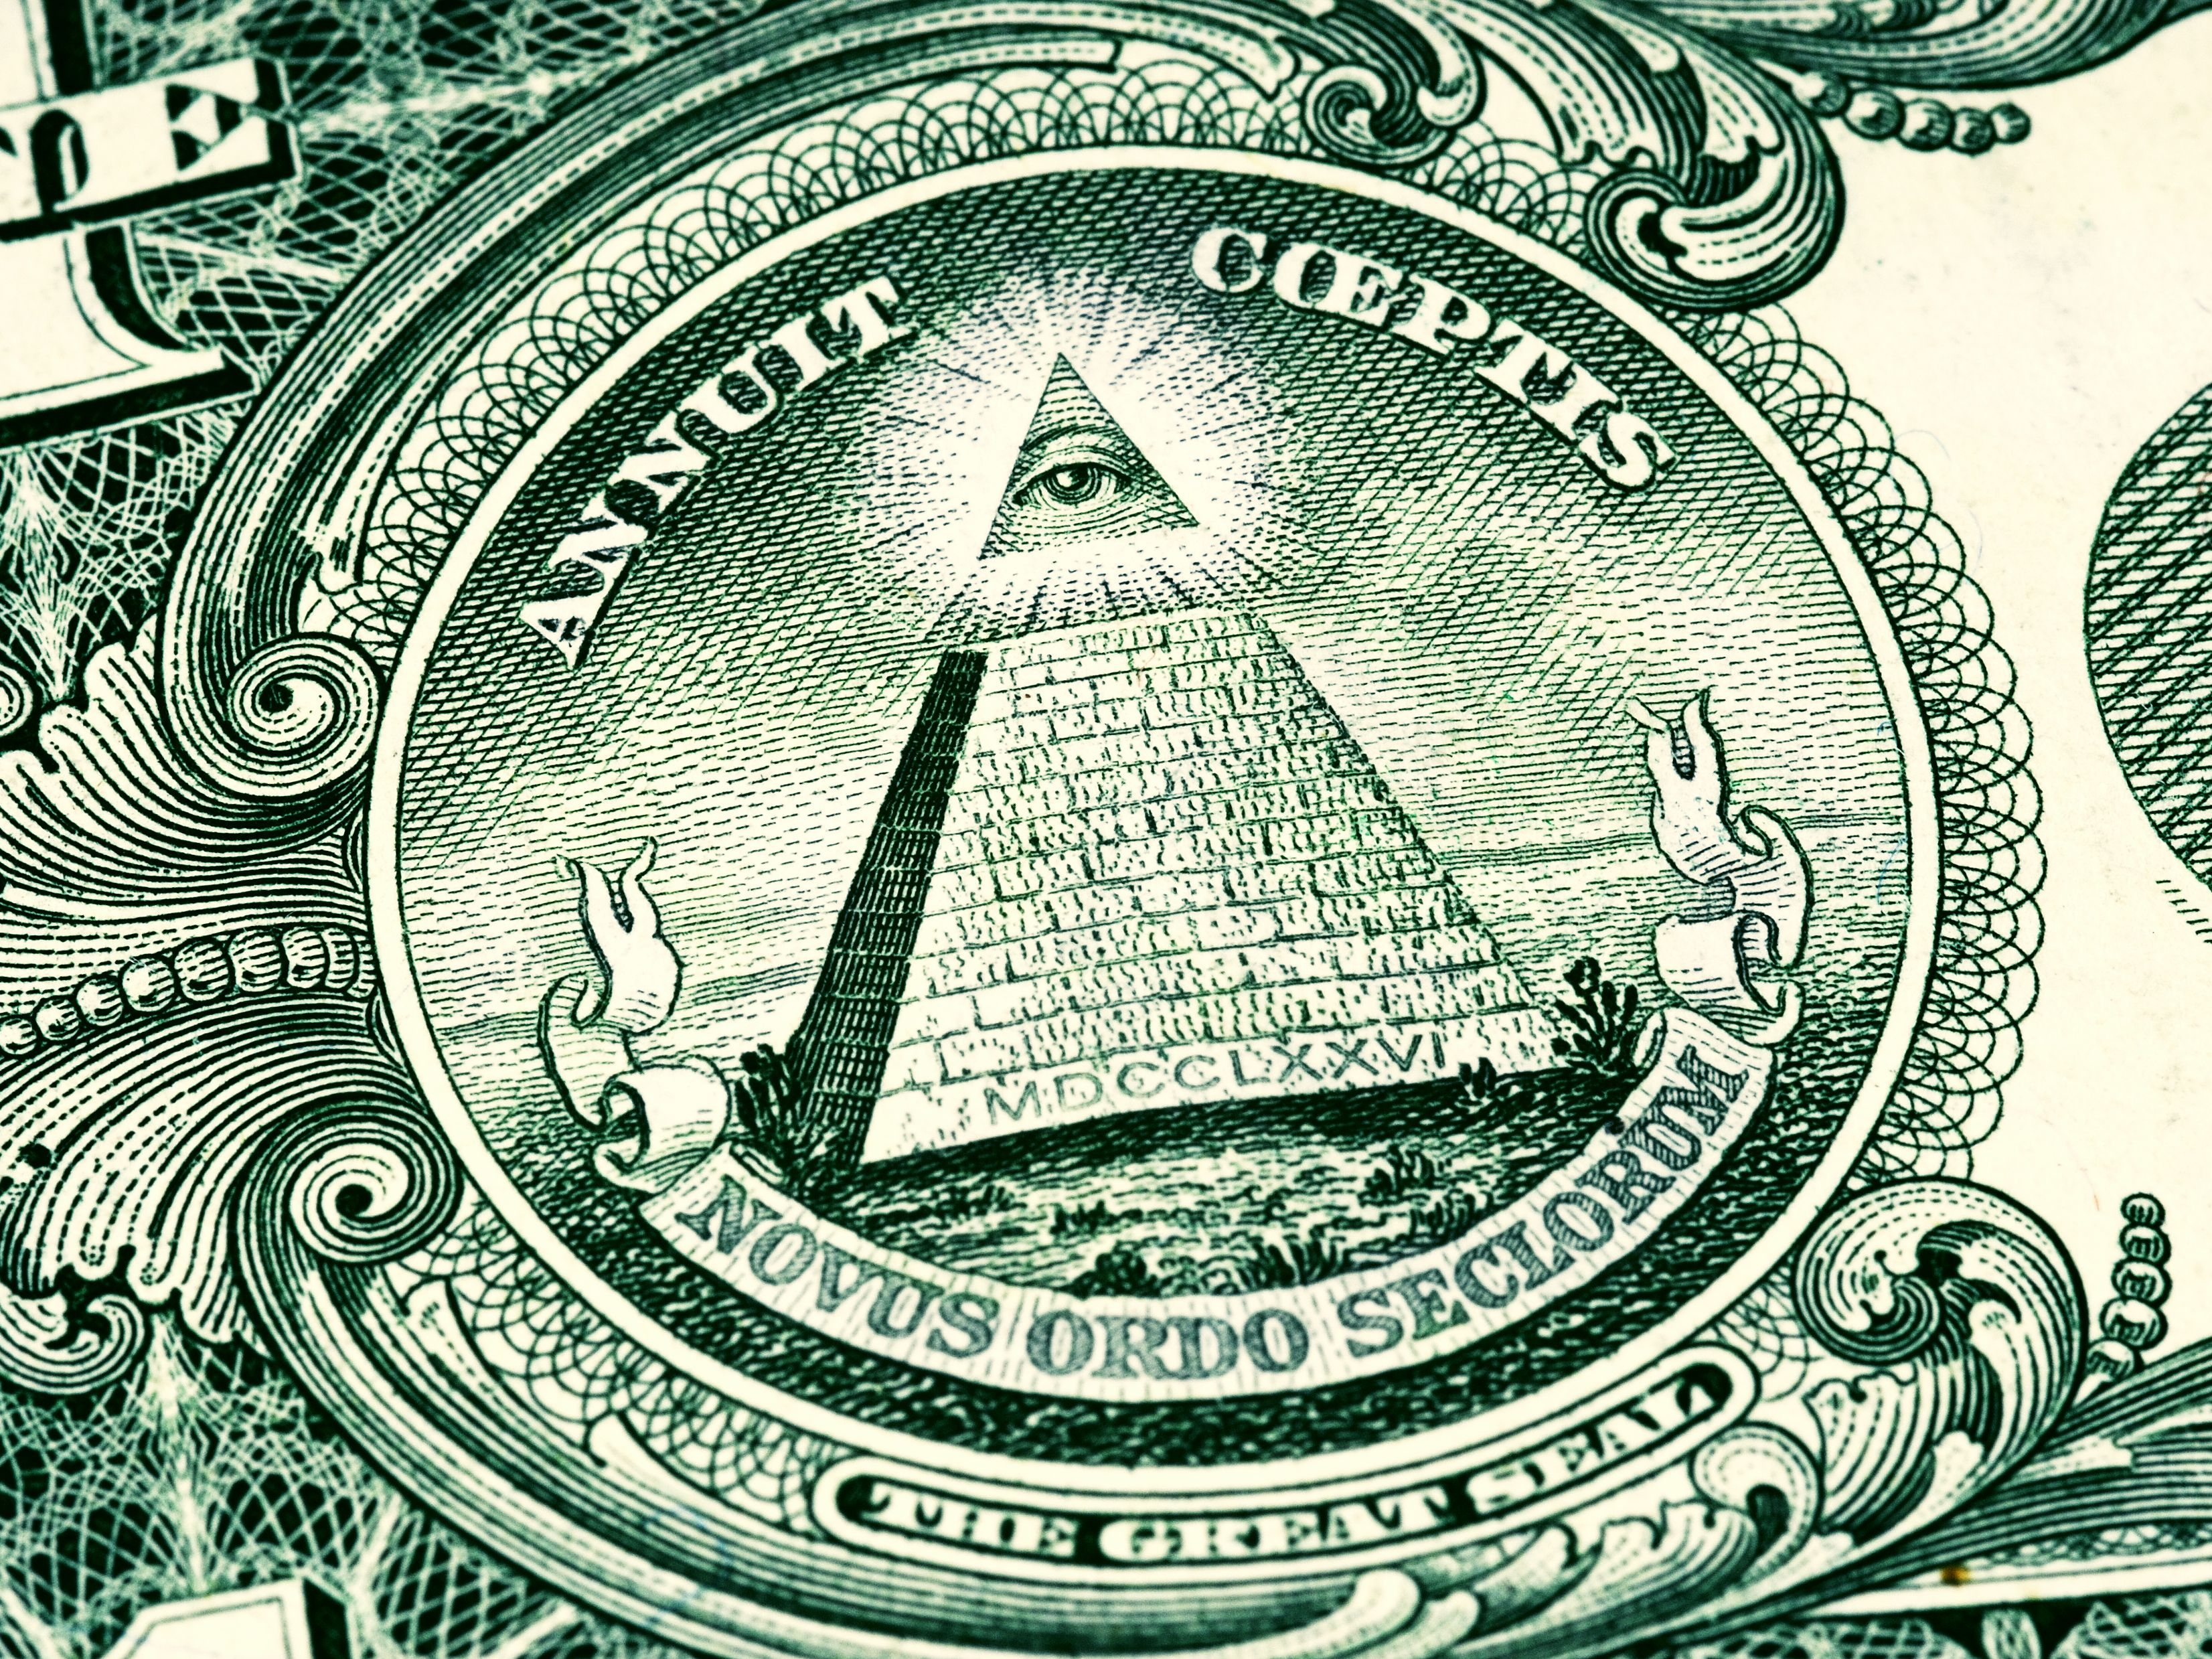 What Does the Eye of Providence Mean?